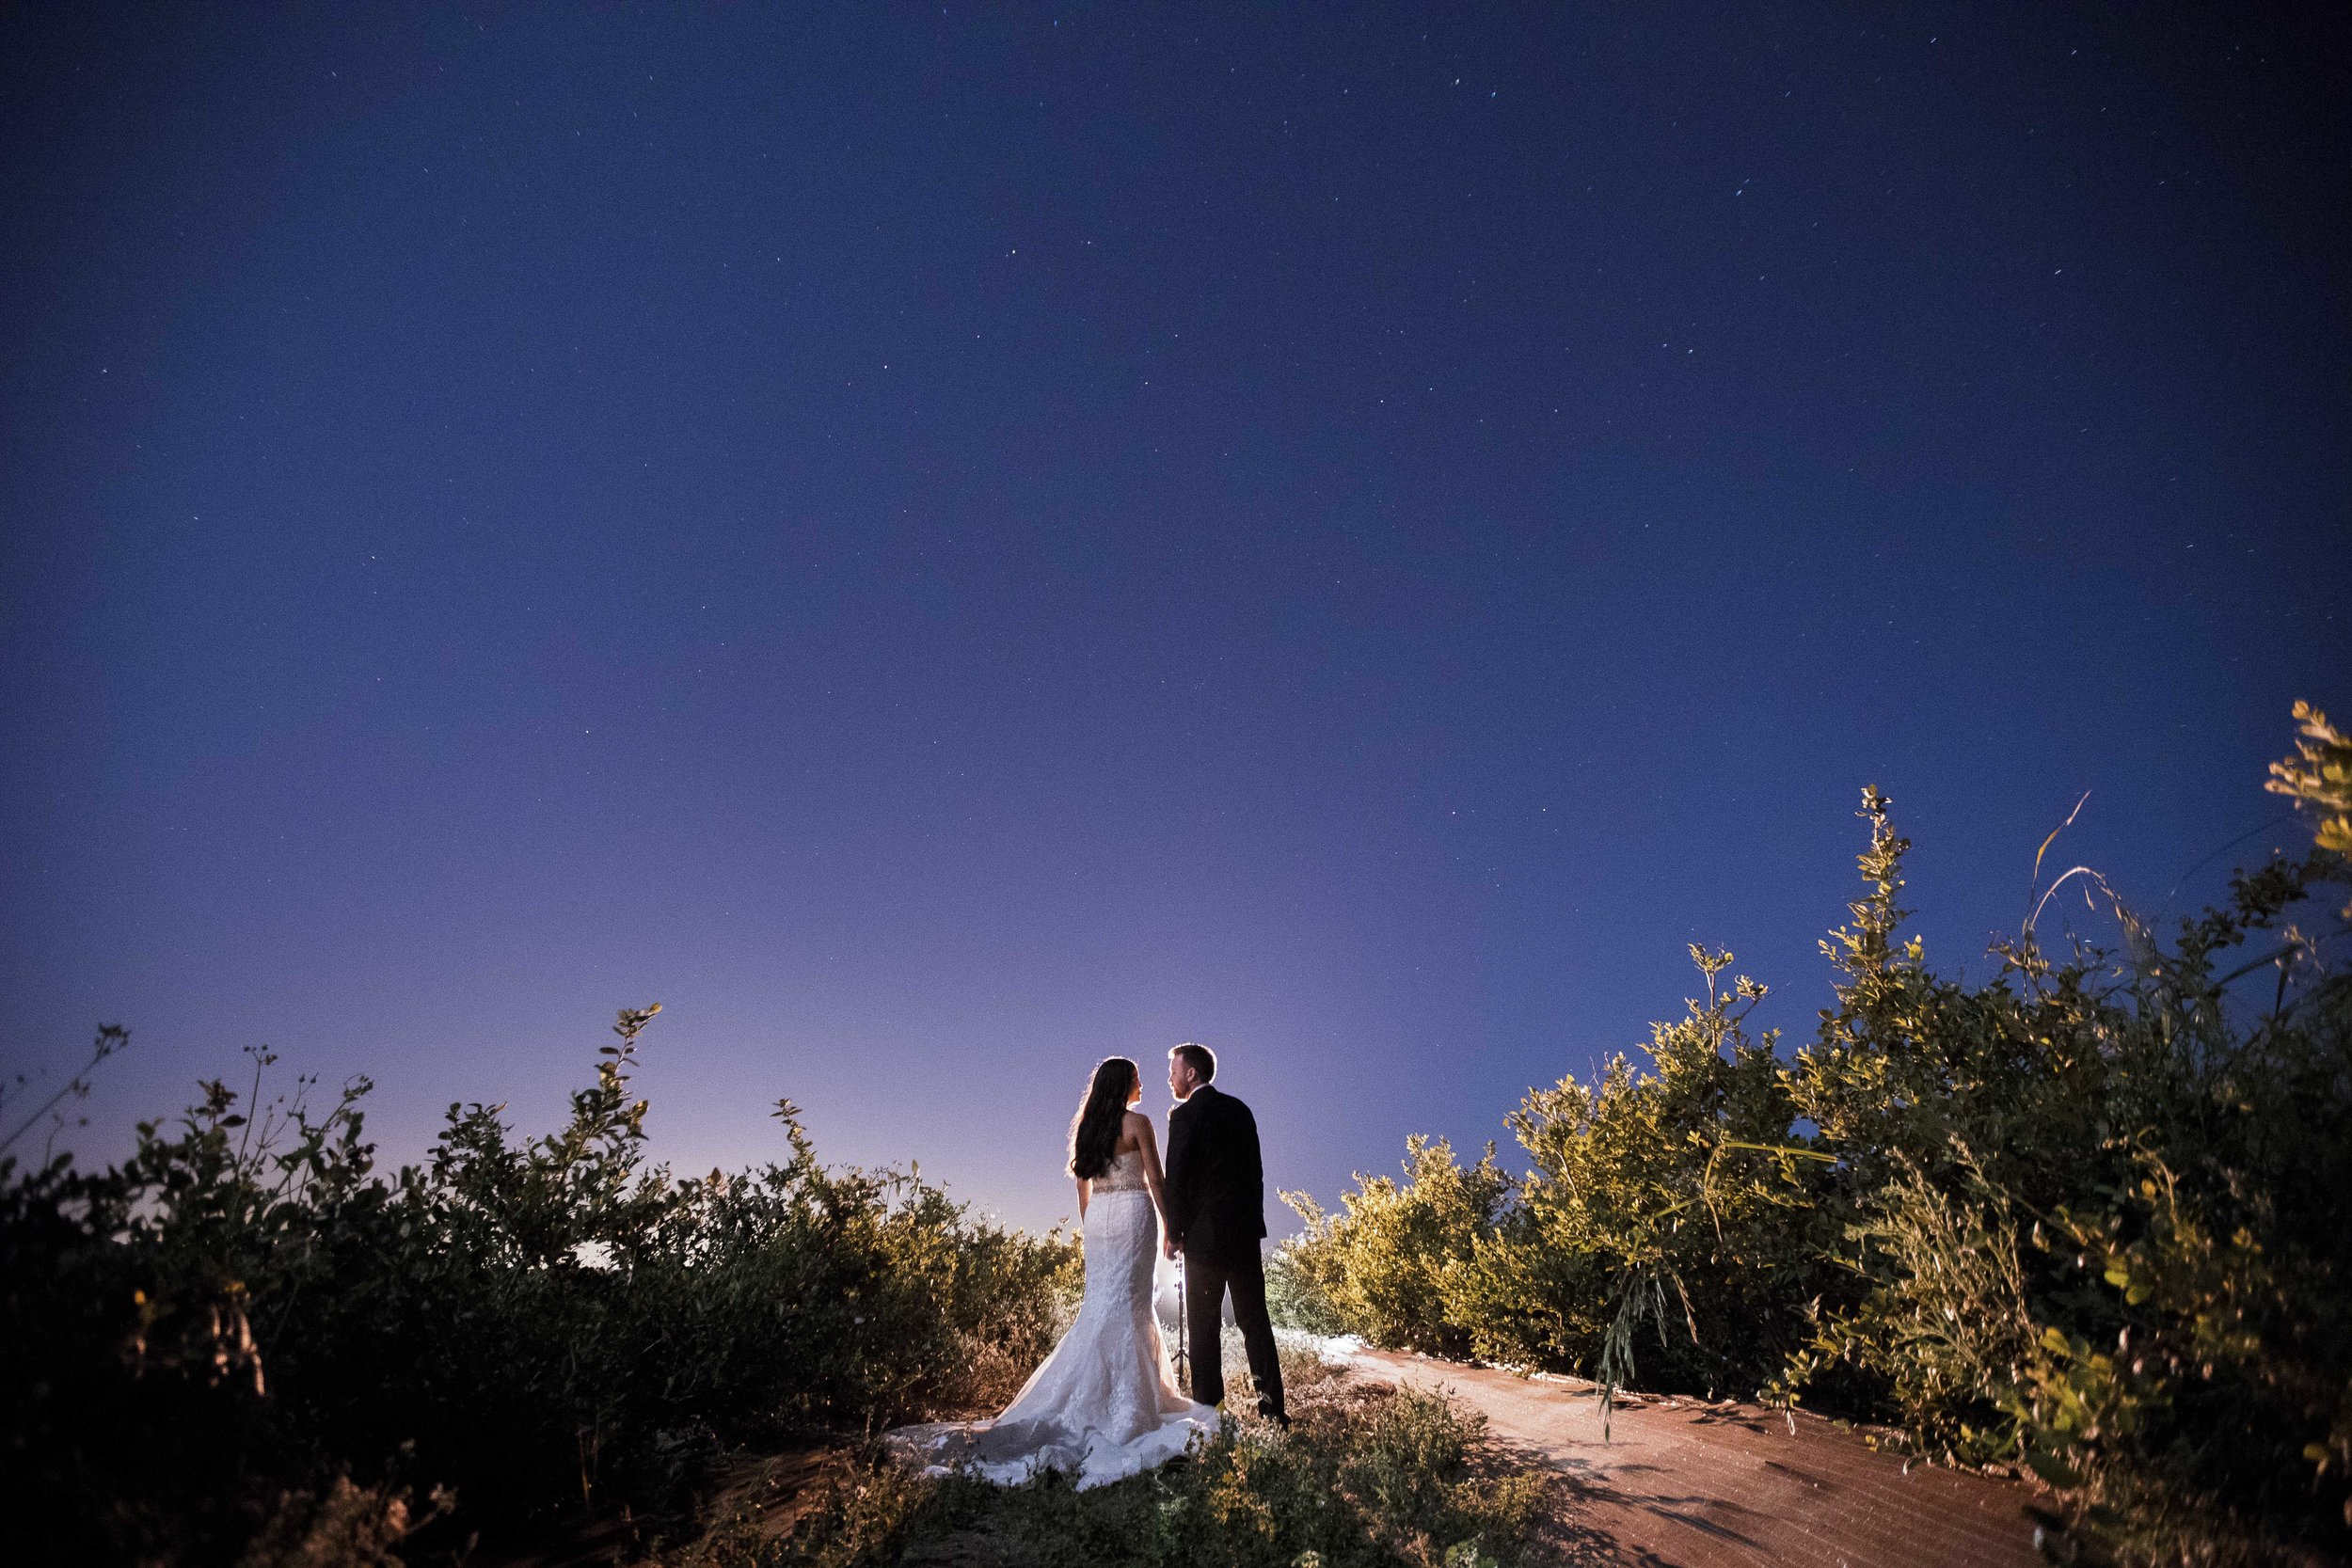 0759-KS-Gerry-Ranch-Ventura-County-Wedding-Photography-EDIT.jpg